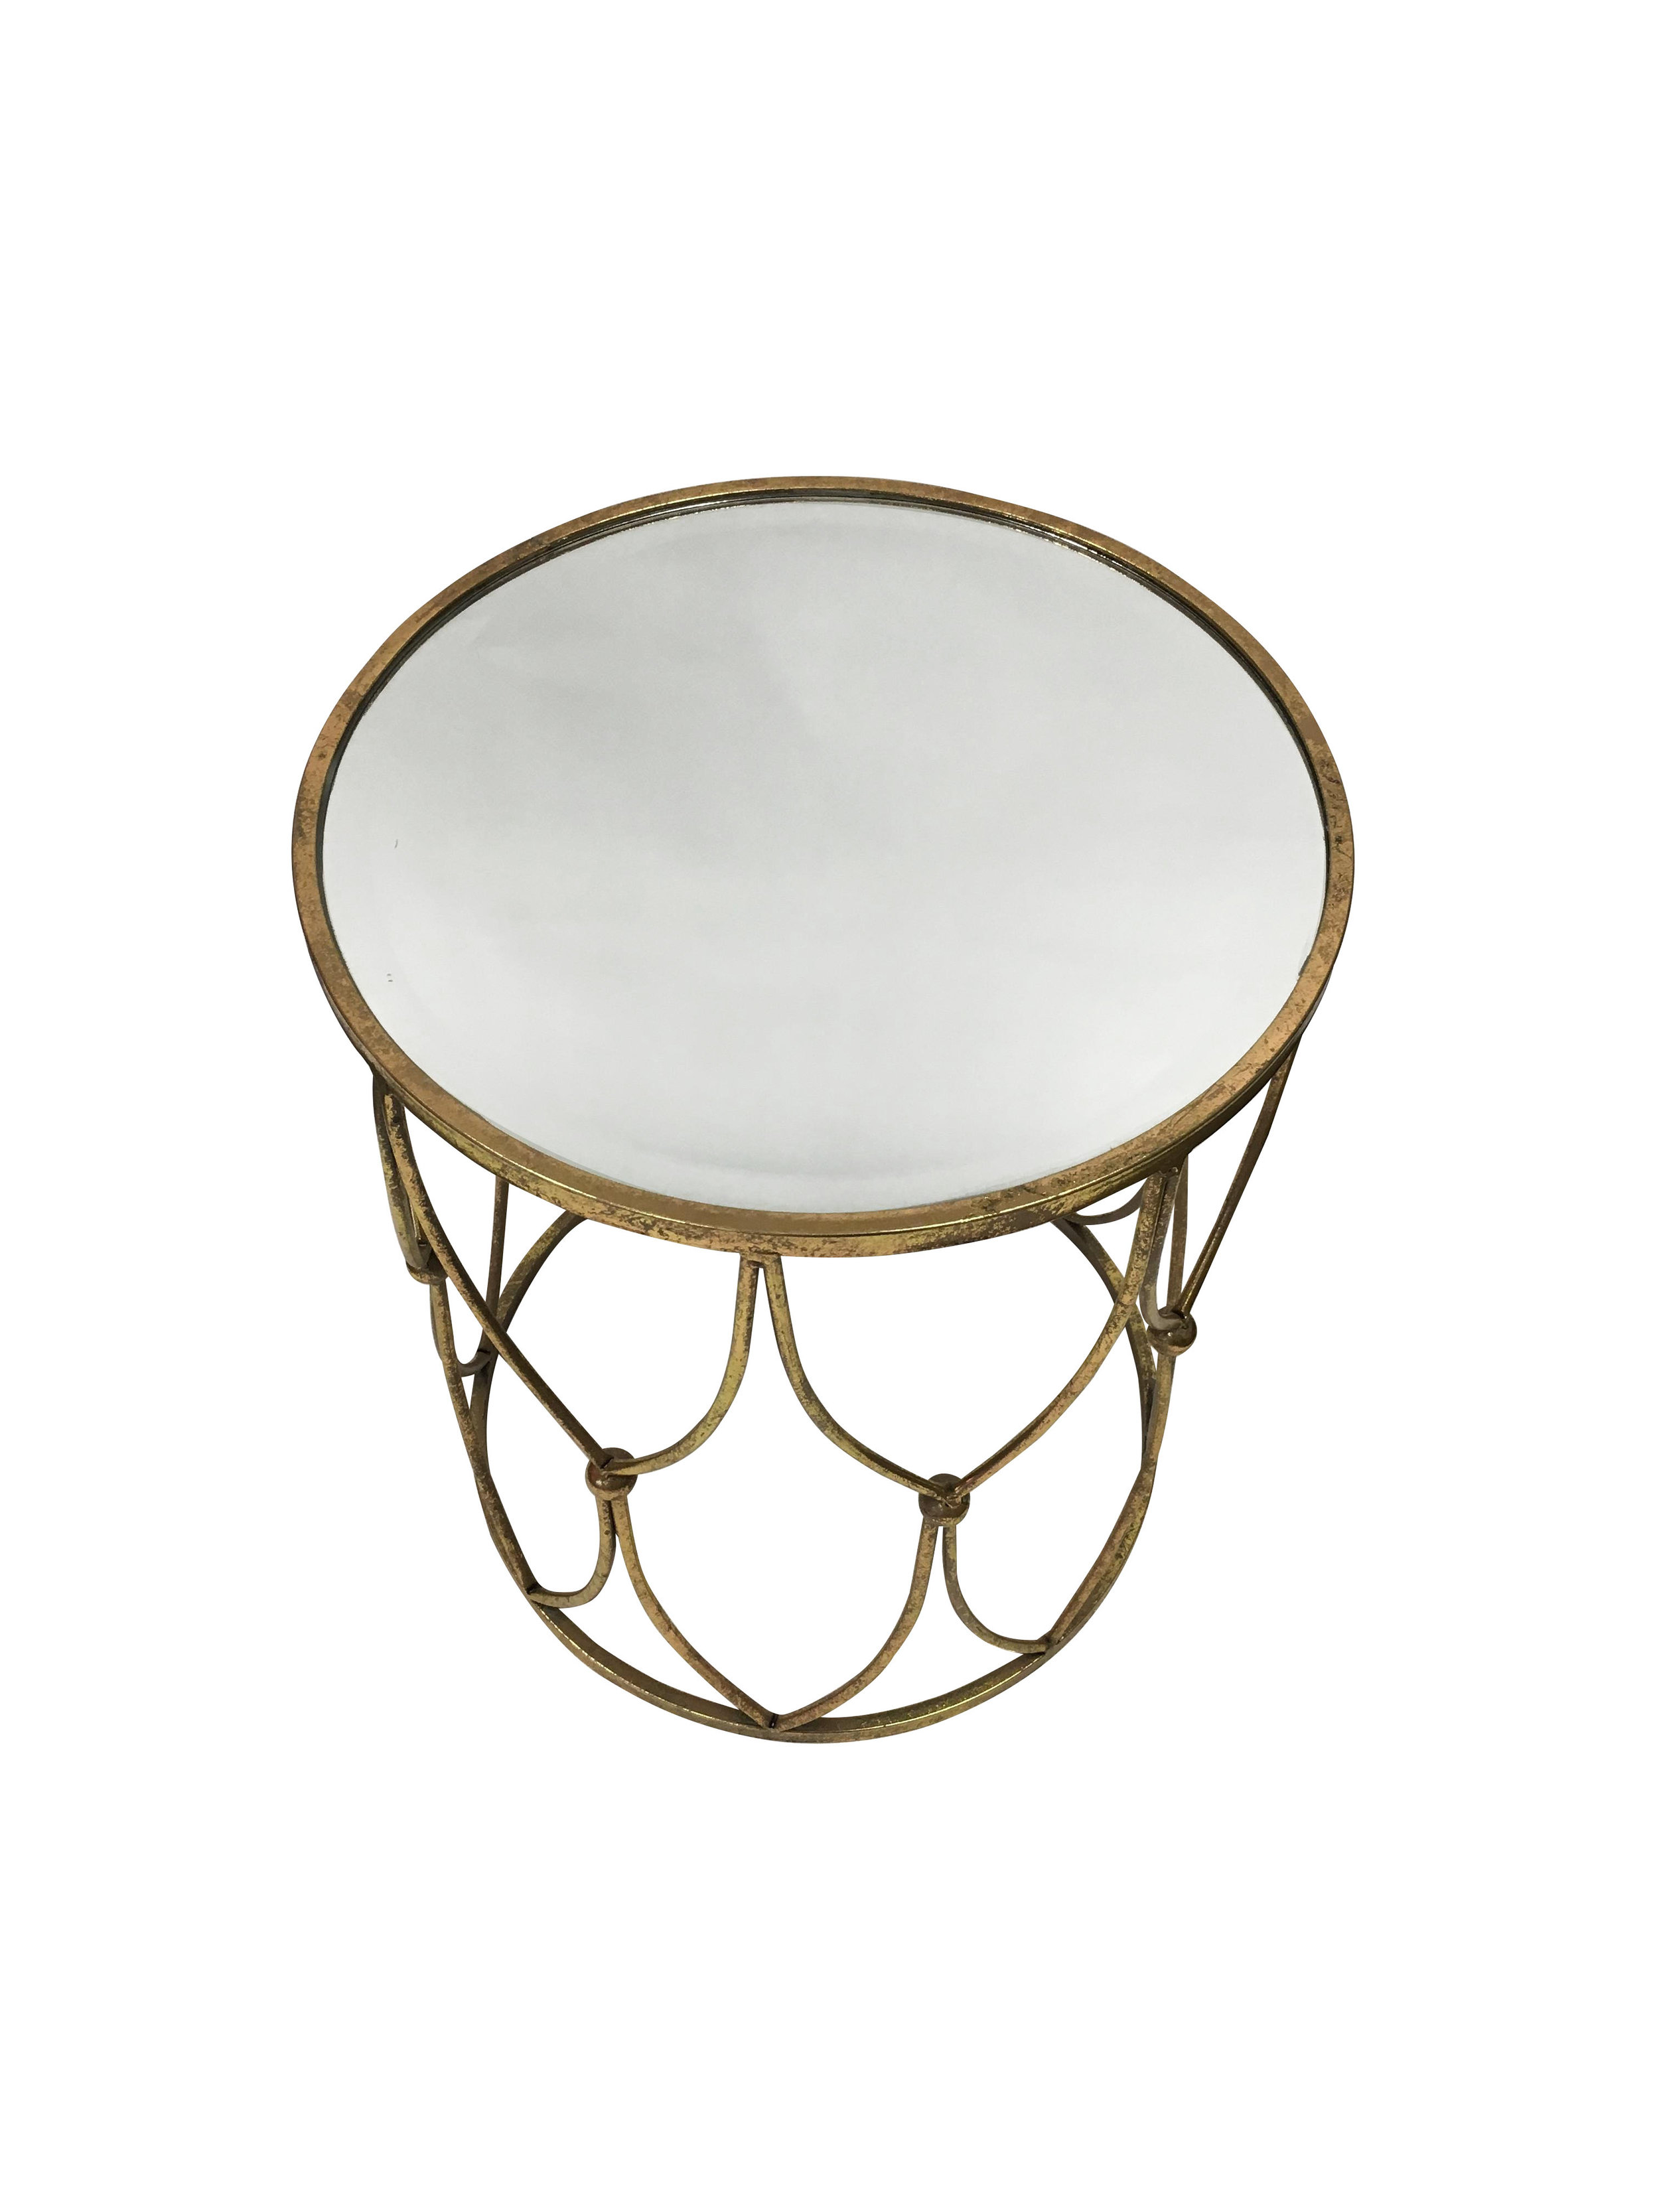 Gold Round Side Table with Mirrored Top4.jpg